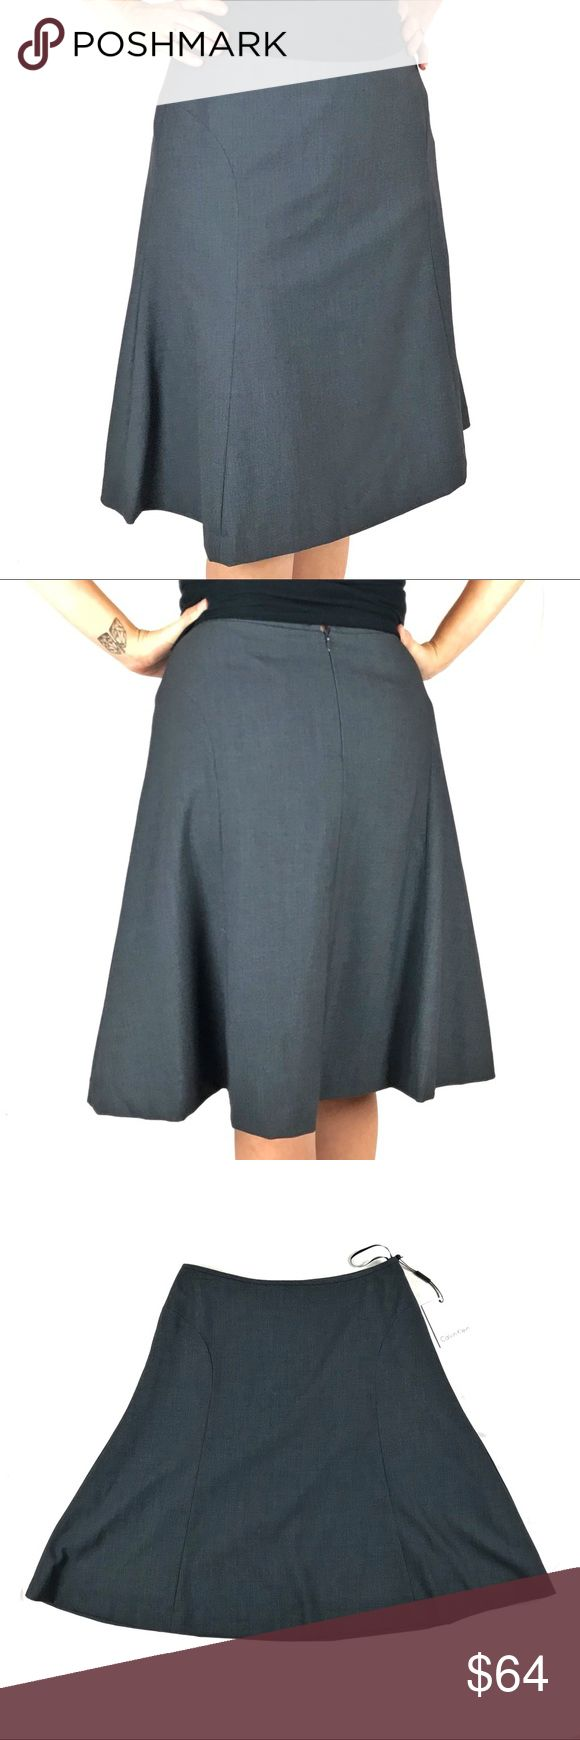 """Calvin Klein Suiting Skirt Brand new Trumpet A-line shape Suit separate 14-1/2"""" across waist 22"""" long Shell: 63% polyester, 33% rayon, 4% spandex Lining: 100% polyester Calvin Klein Skirts A-Line or Full"""